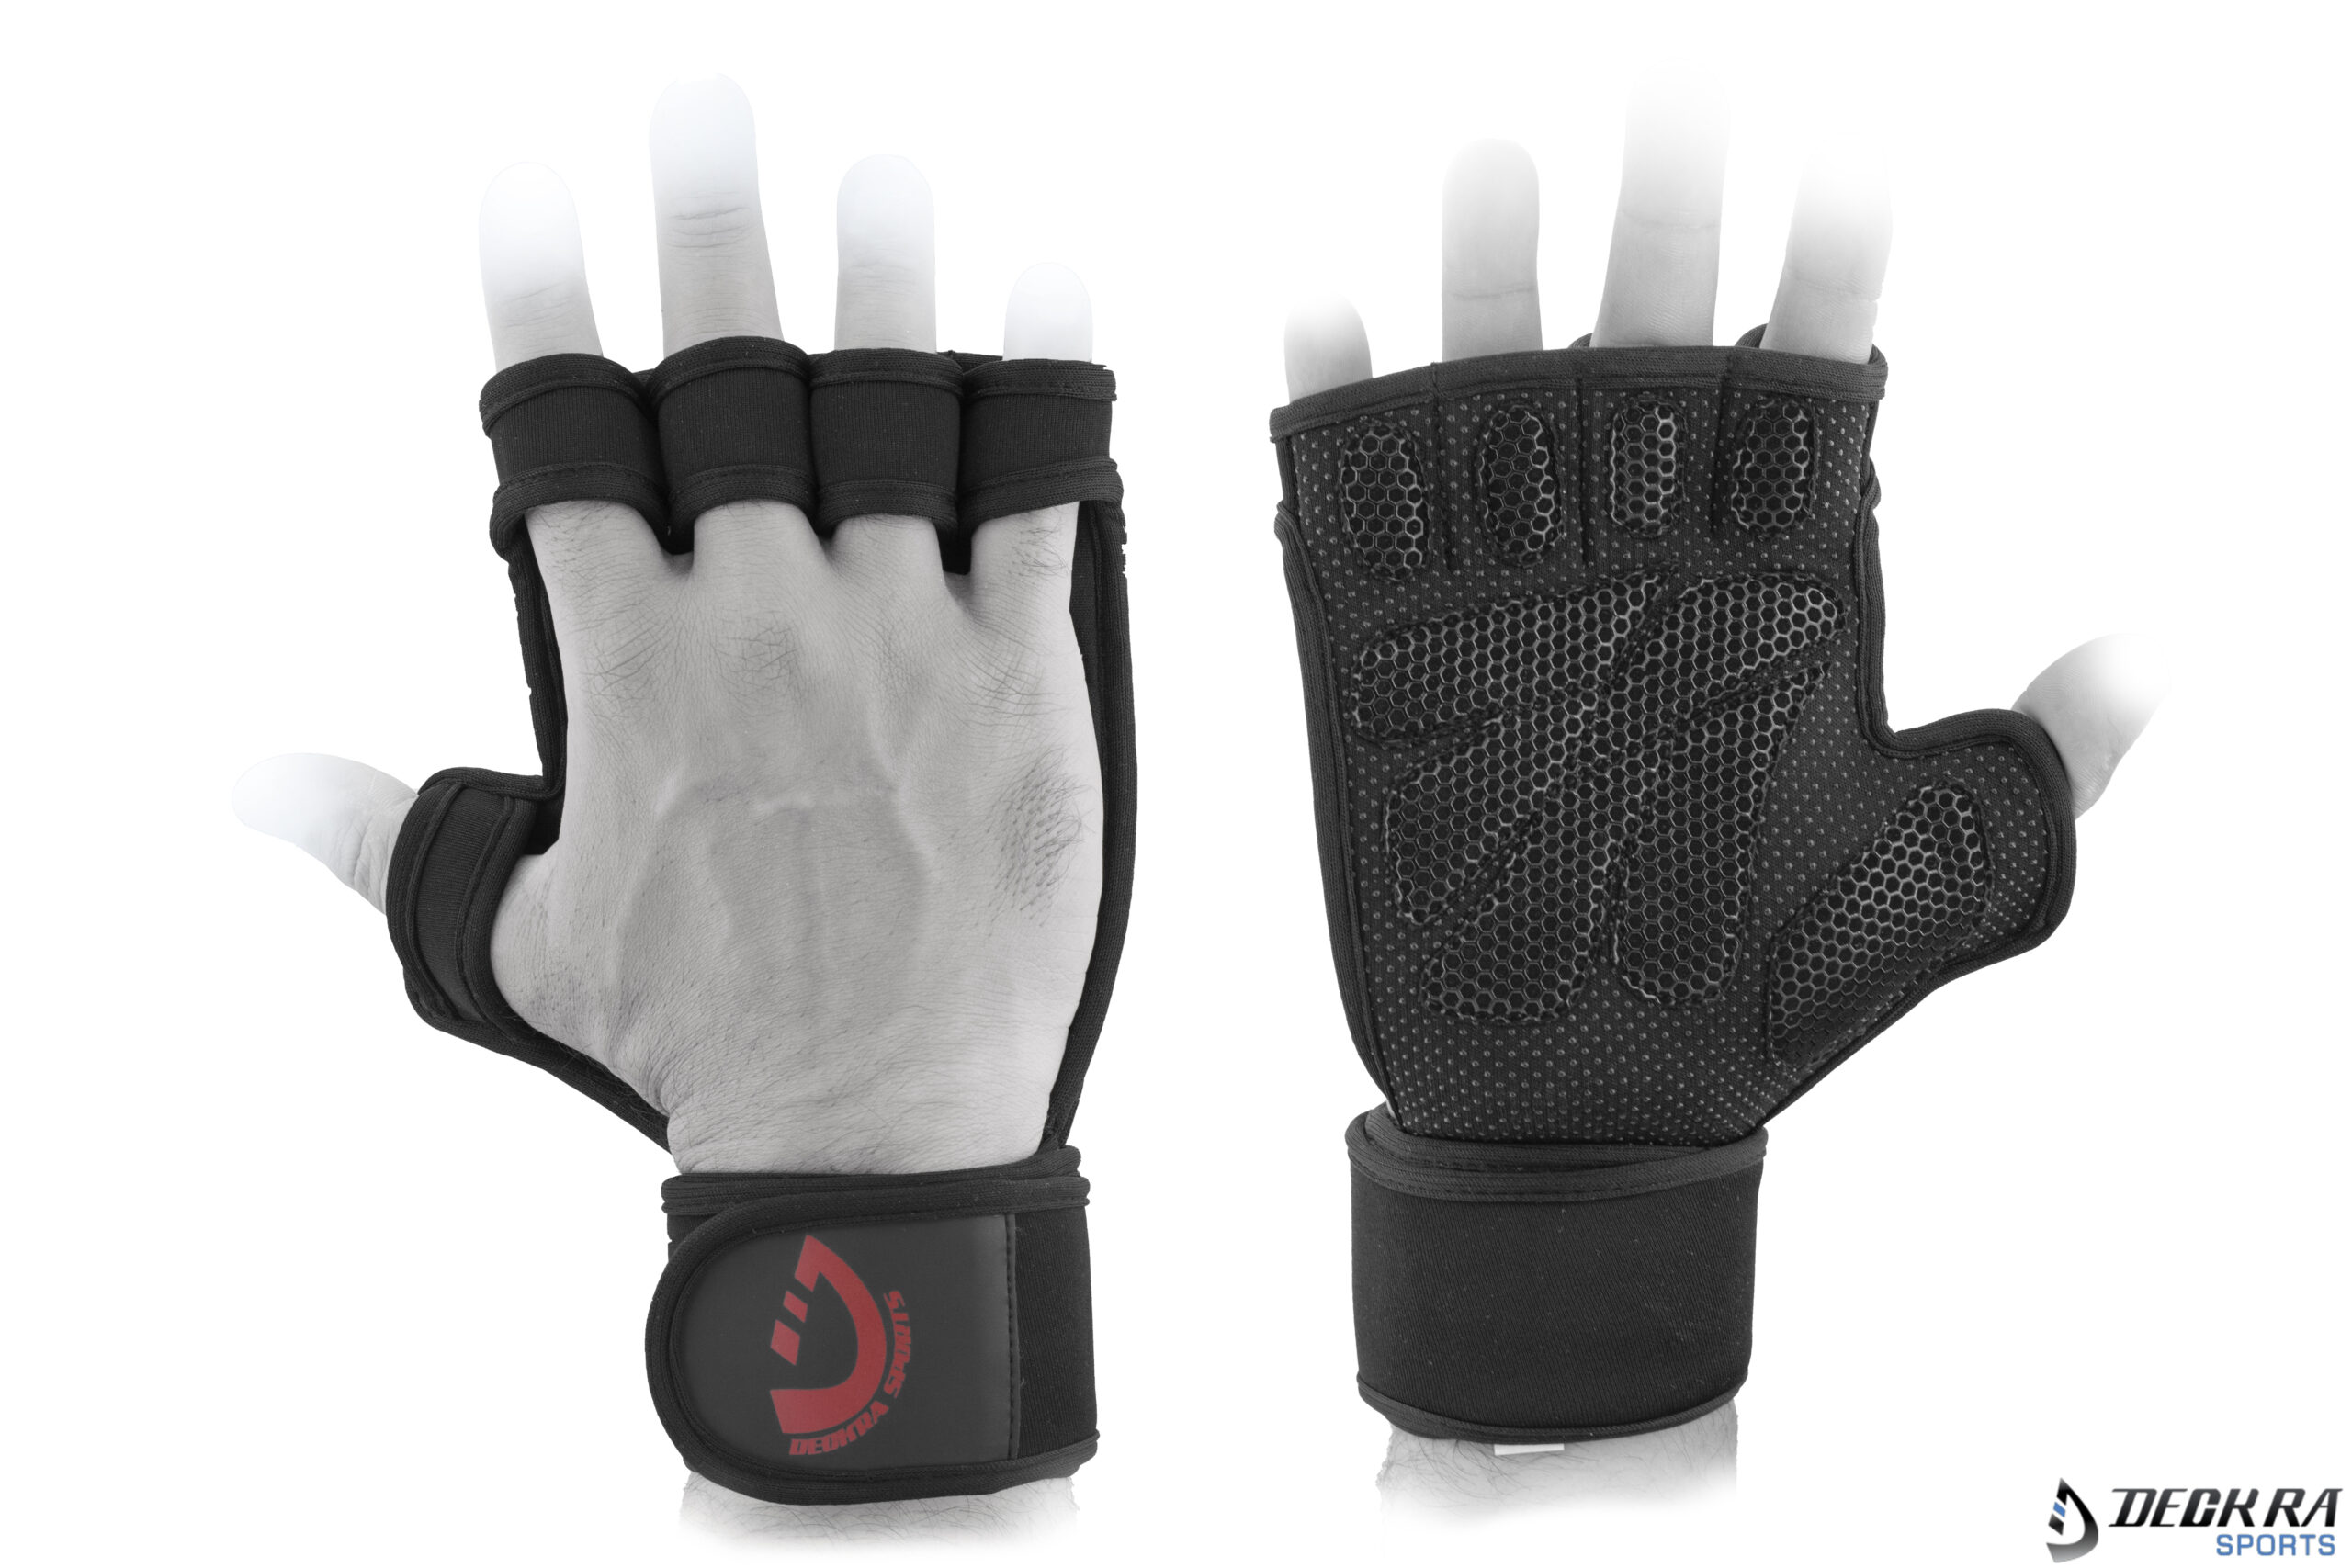 Genuine Leather Gym Gloves Weight Lifting Sport Training Gloves  Fits All Grip